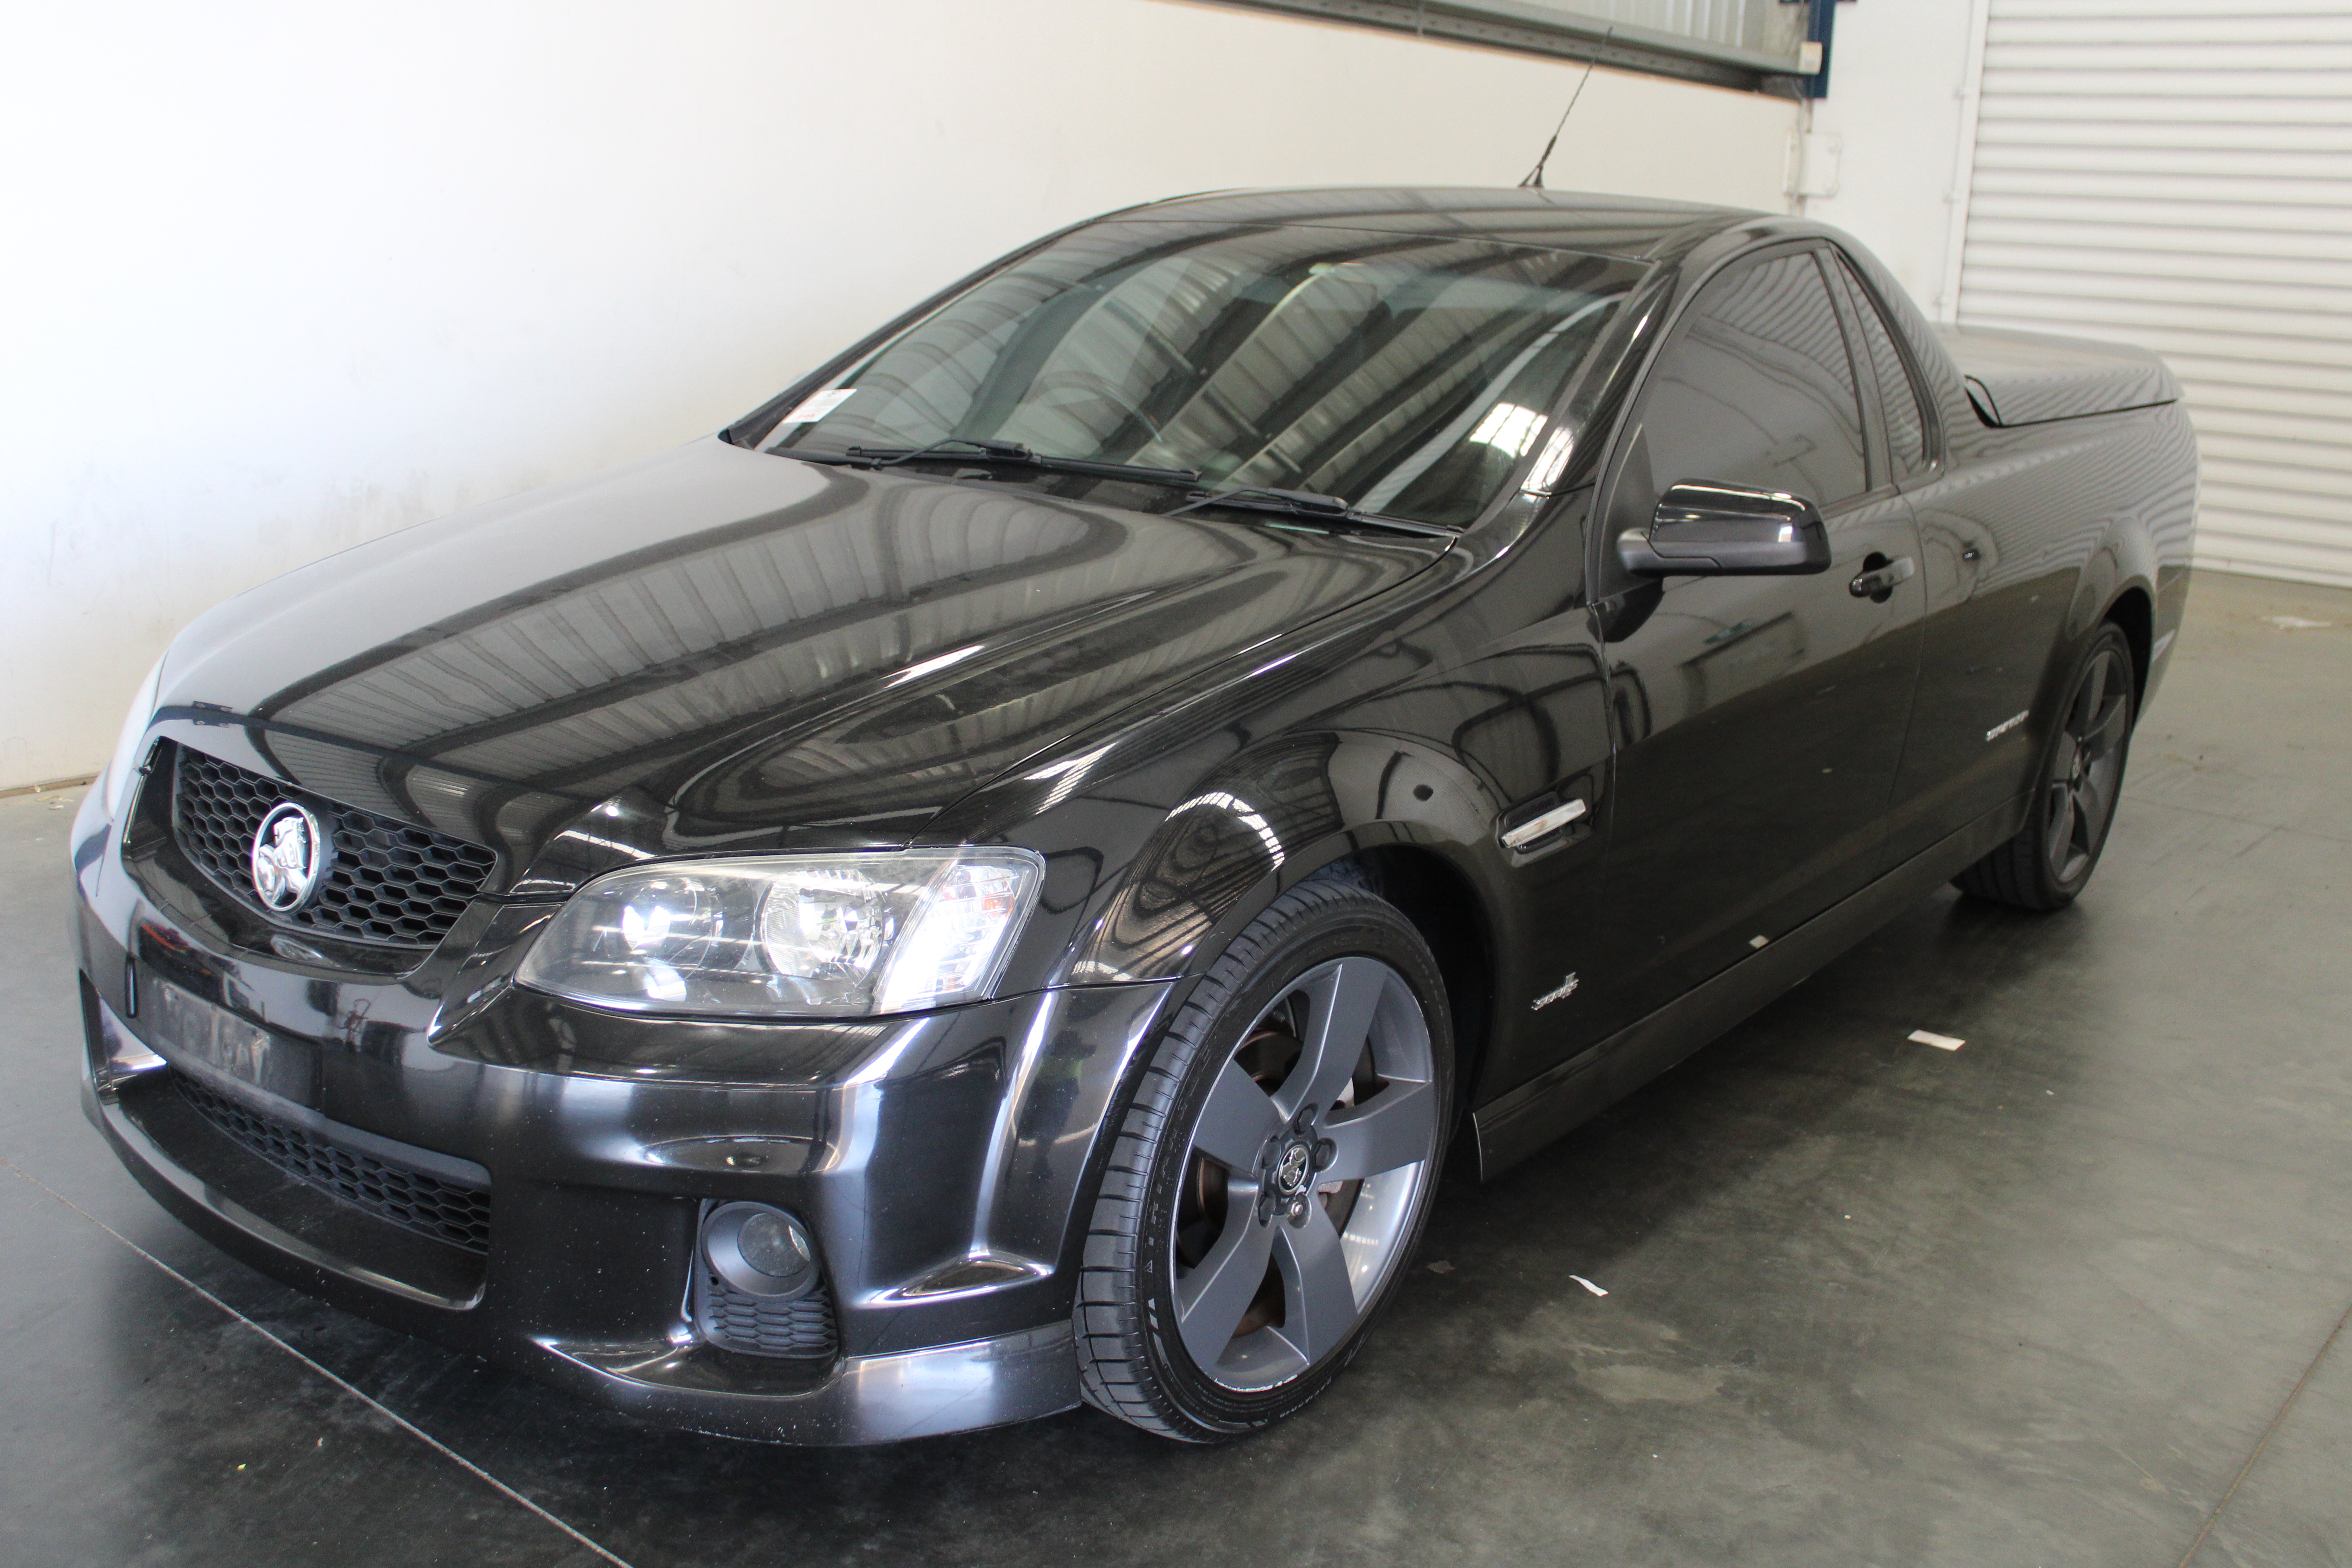 2011 Holden VE II Commodore SV6 THUNDER LE Automatic Ute